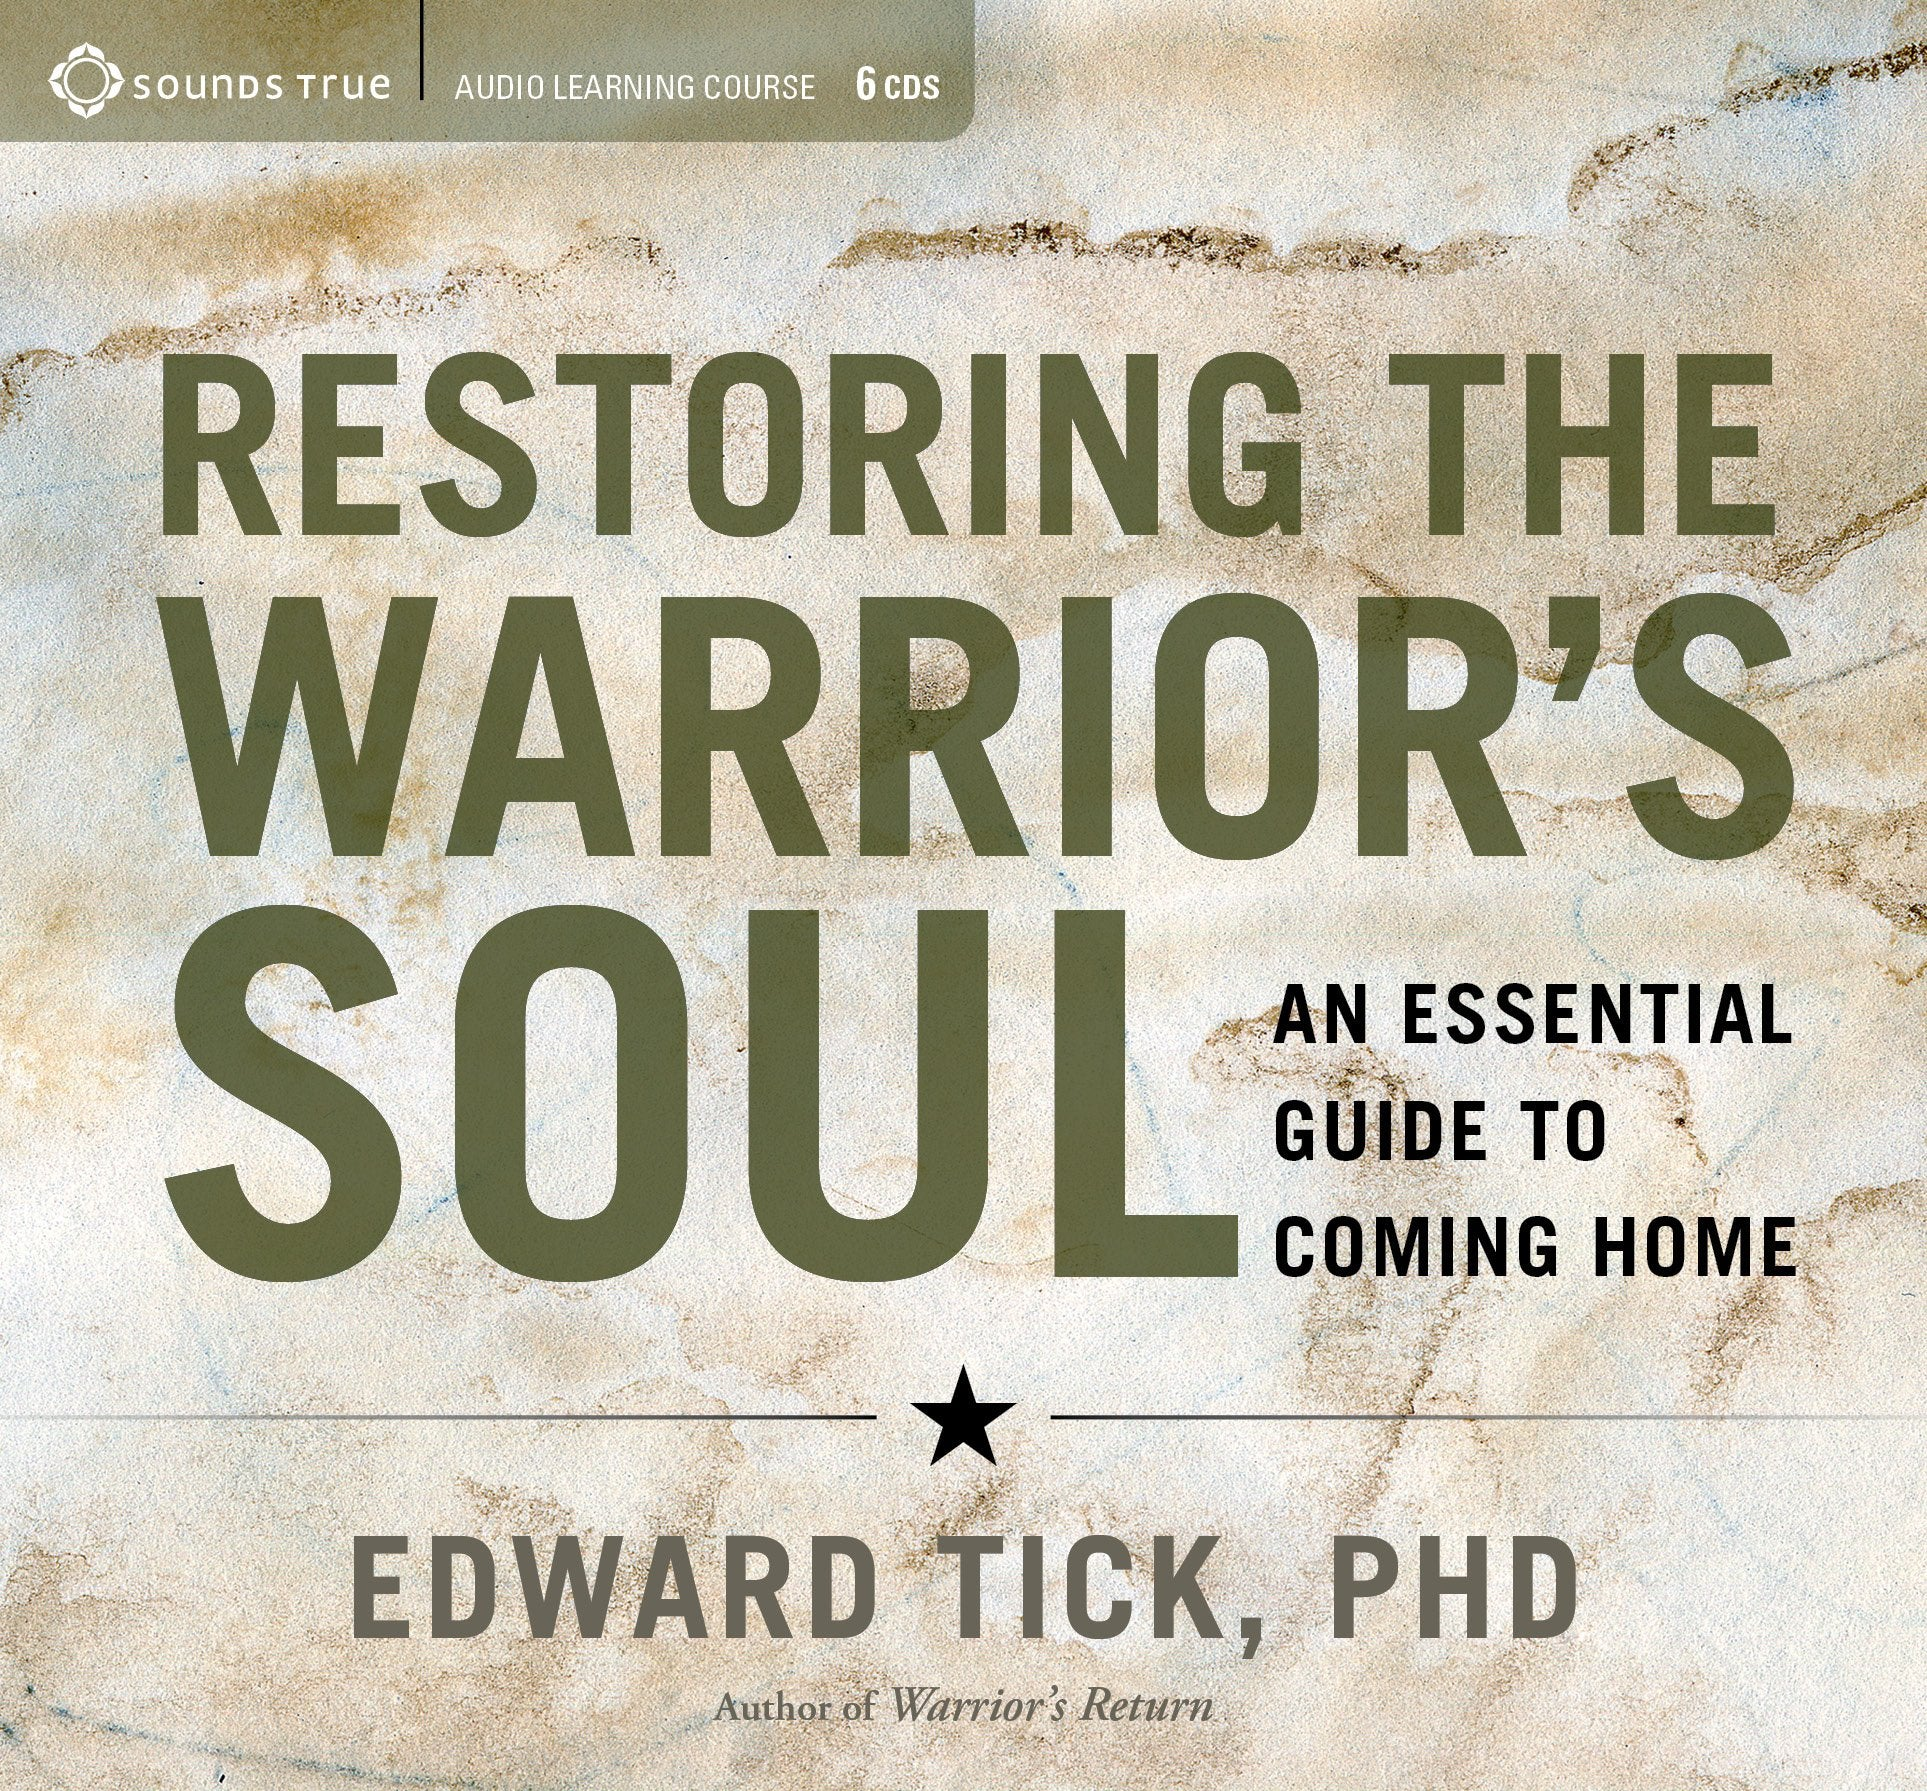 Restoring the Warrior's Soul - CE Credits